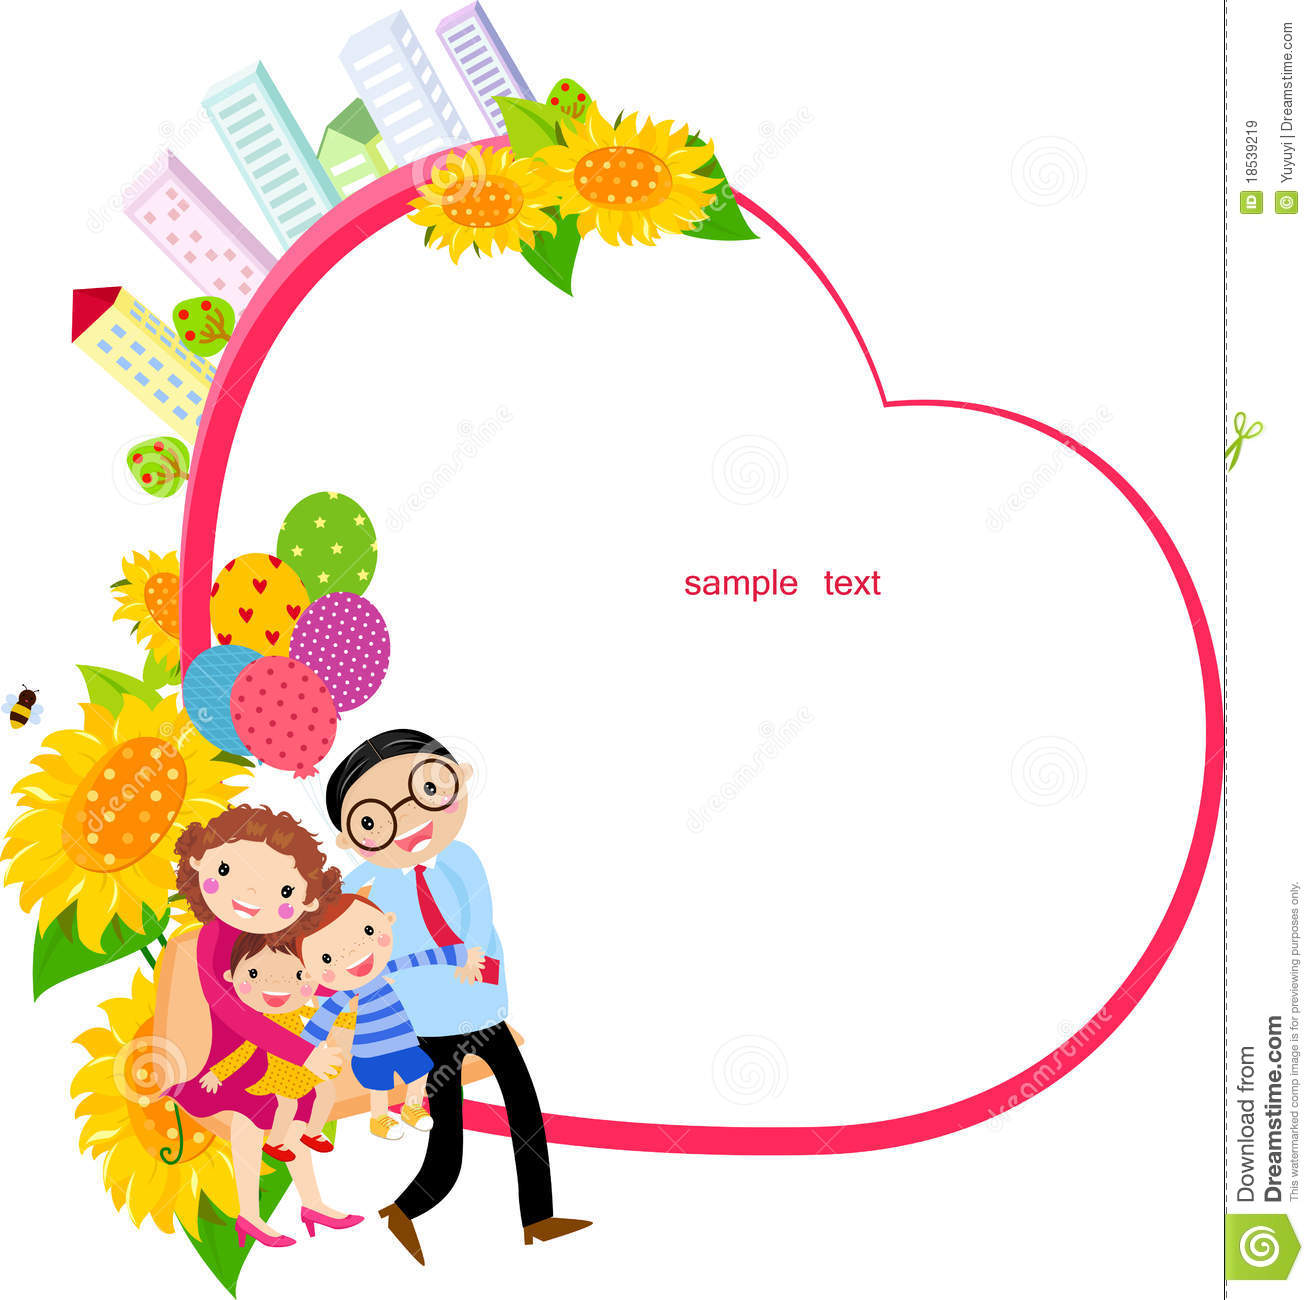 Family And Frame Royalty Free Stock Images - Image: 18539219